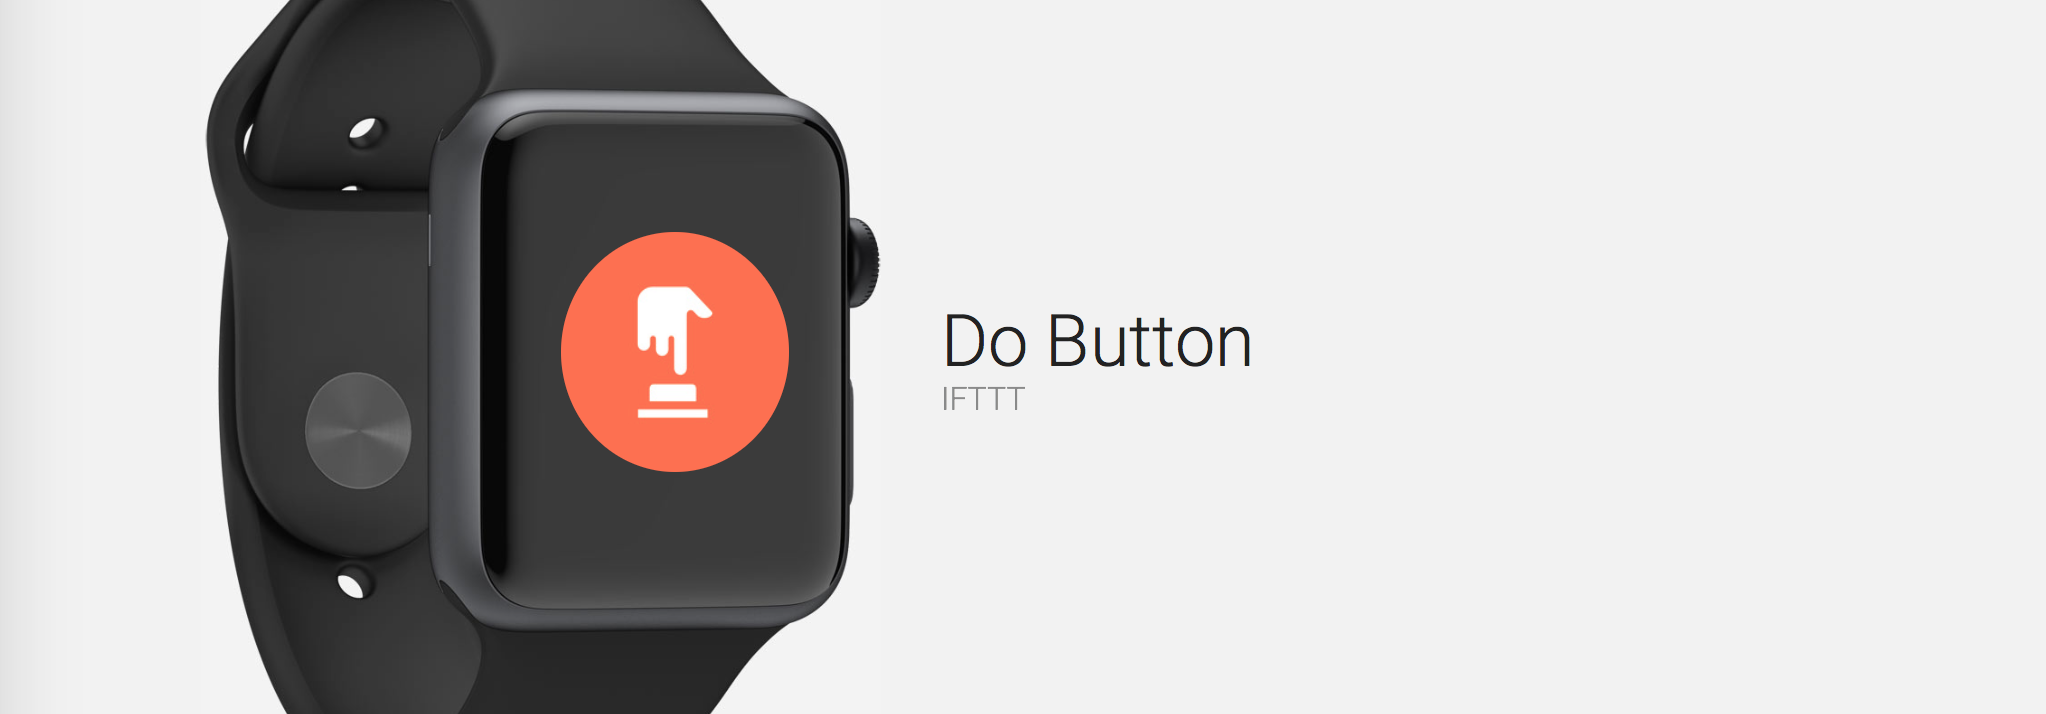 IFTTT's DO Button for Apple Watch brings automation to the